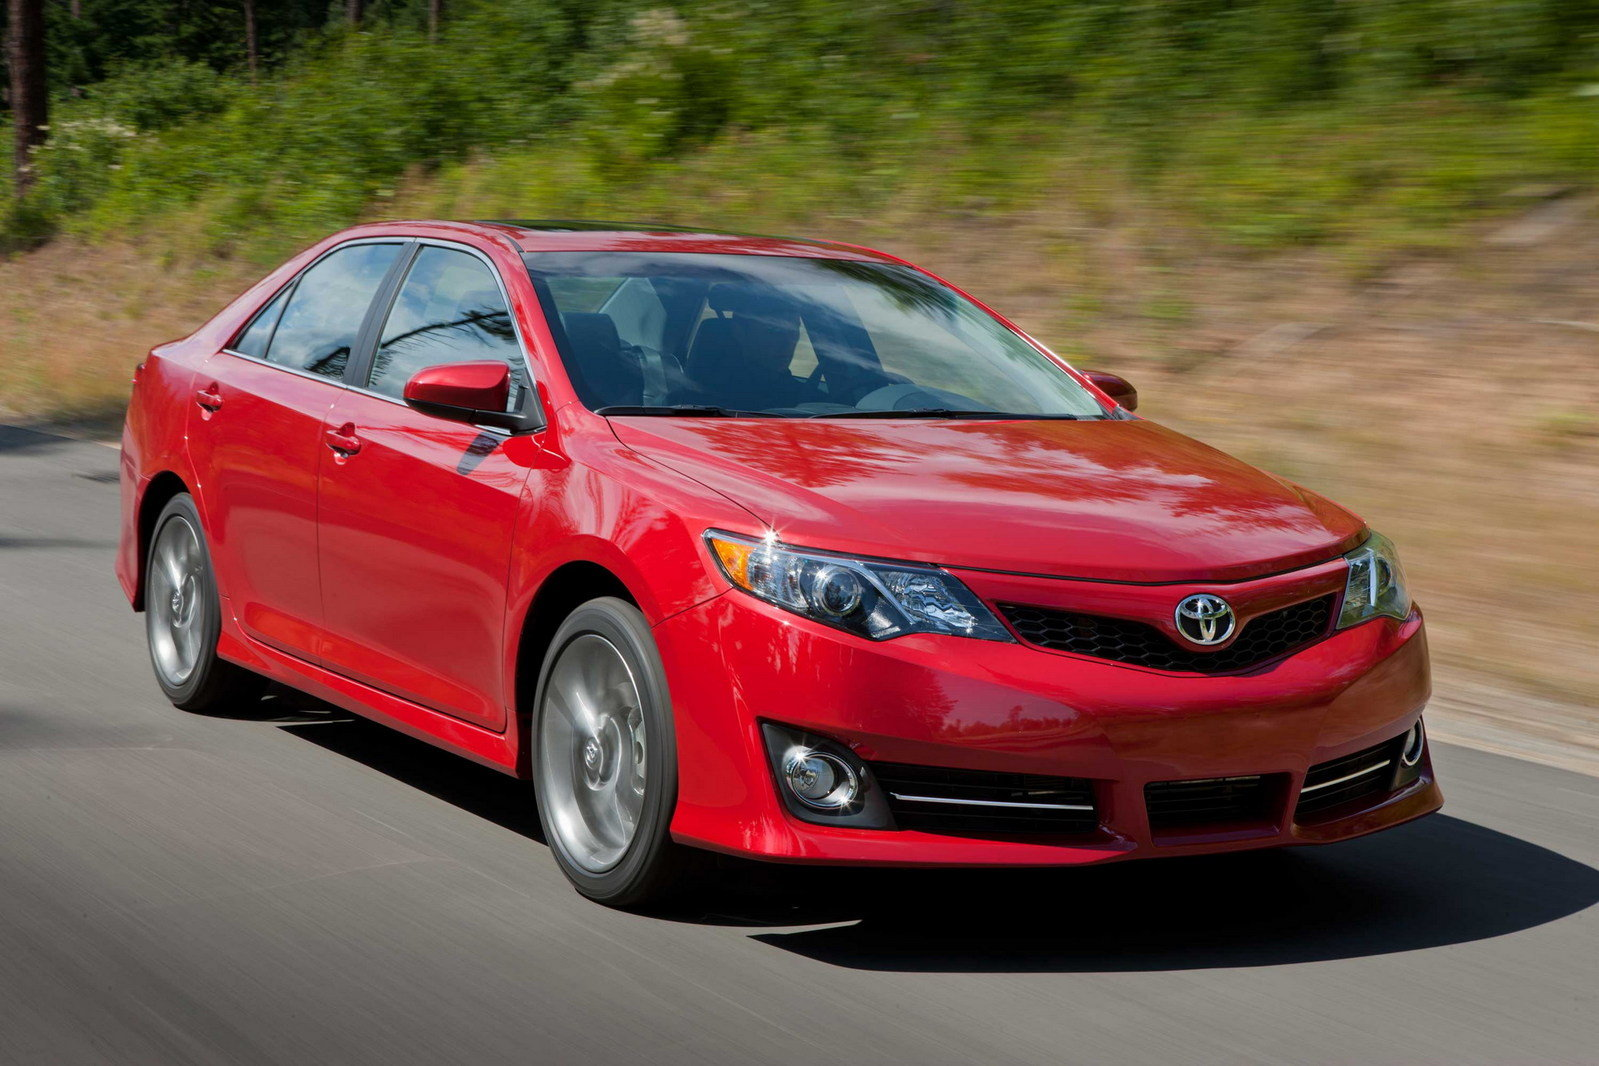 2012 toyota camry review gallery top speed. Black Bedroom Furniture Sets. Home Design Ideas